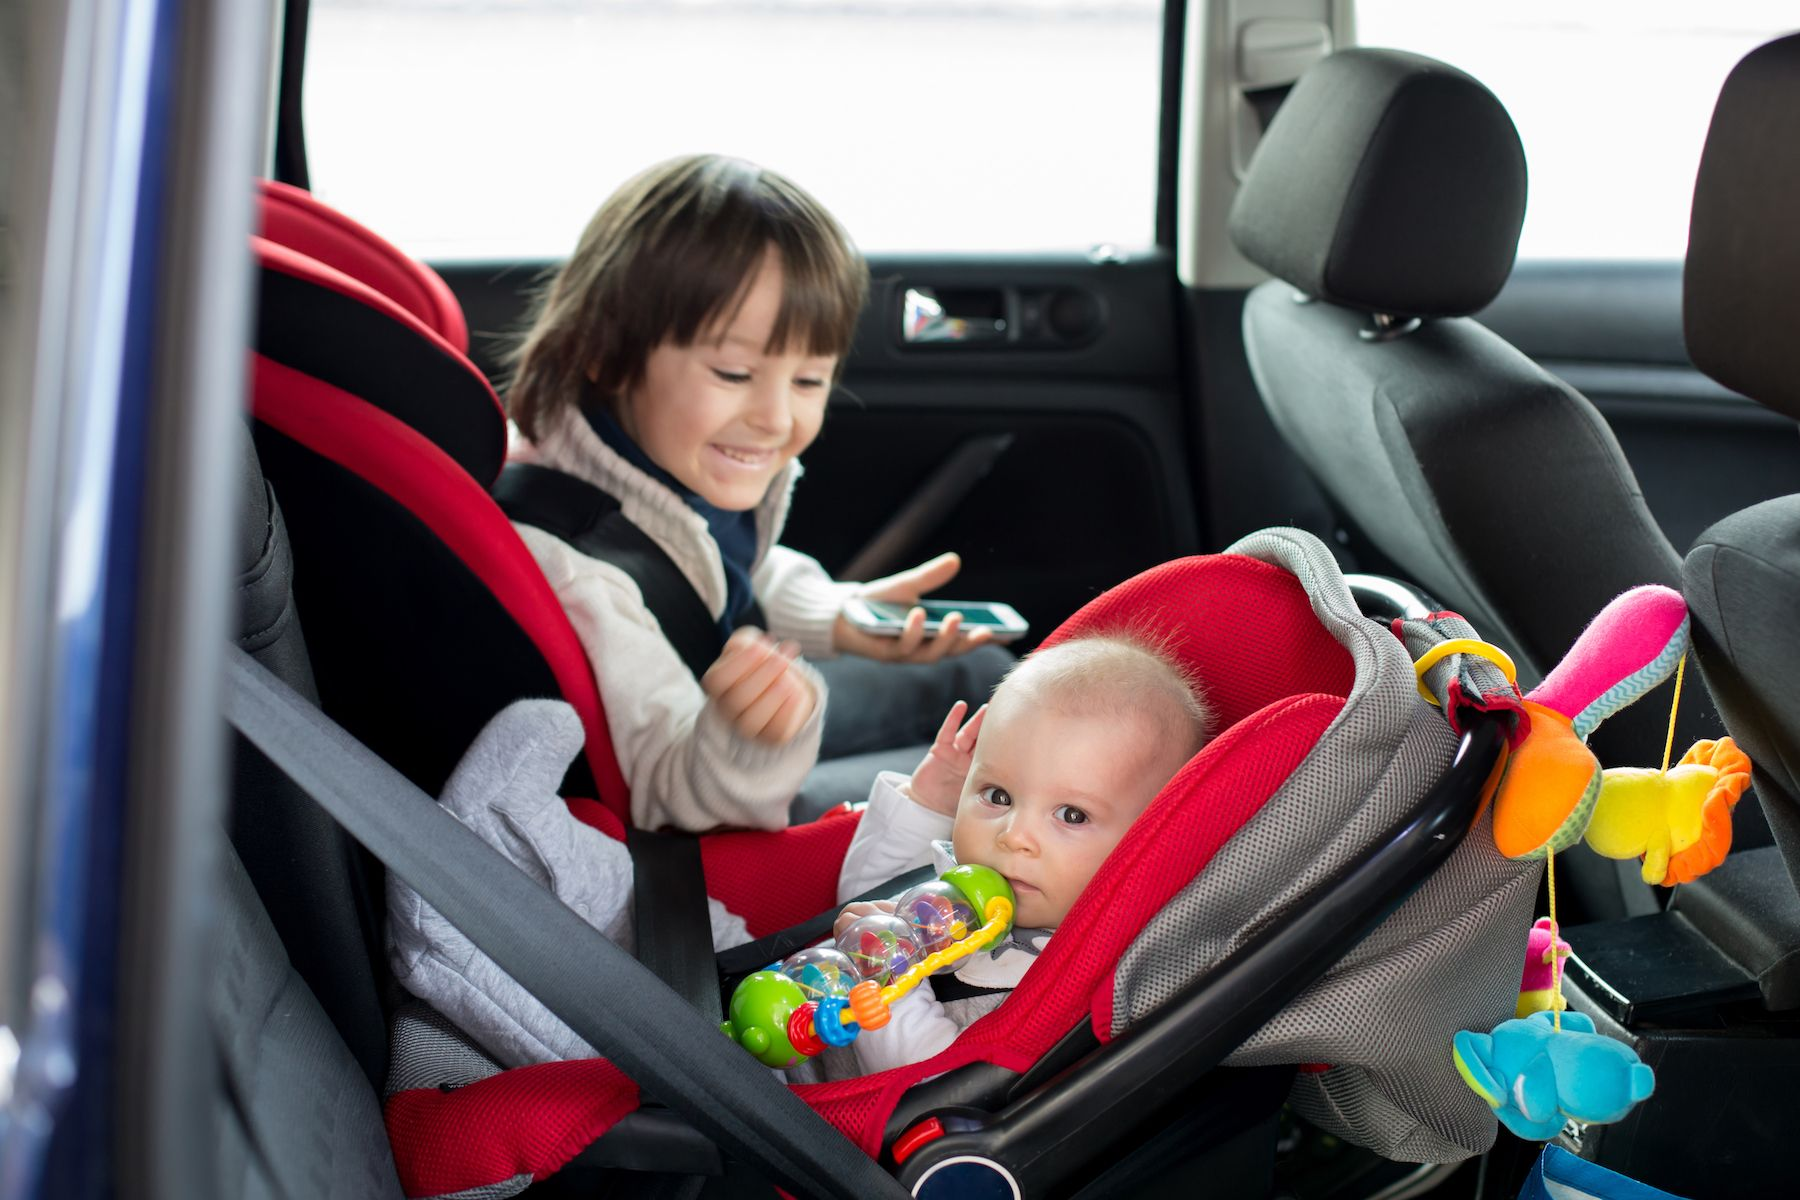 How To Choose The Right Car Seat For Your Child Newborn Carseat Baby Car Seats Car Seats